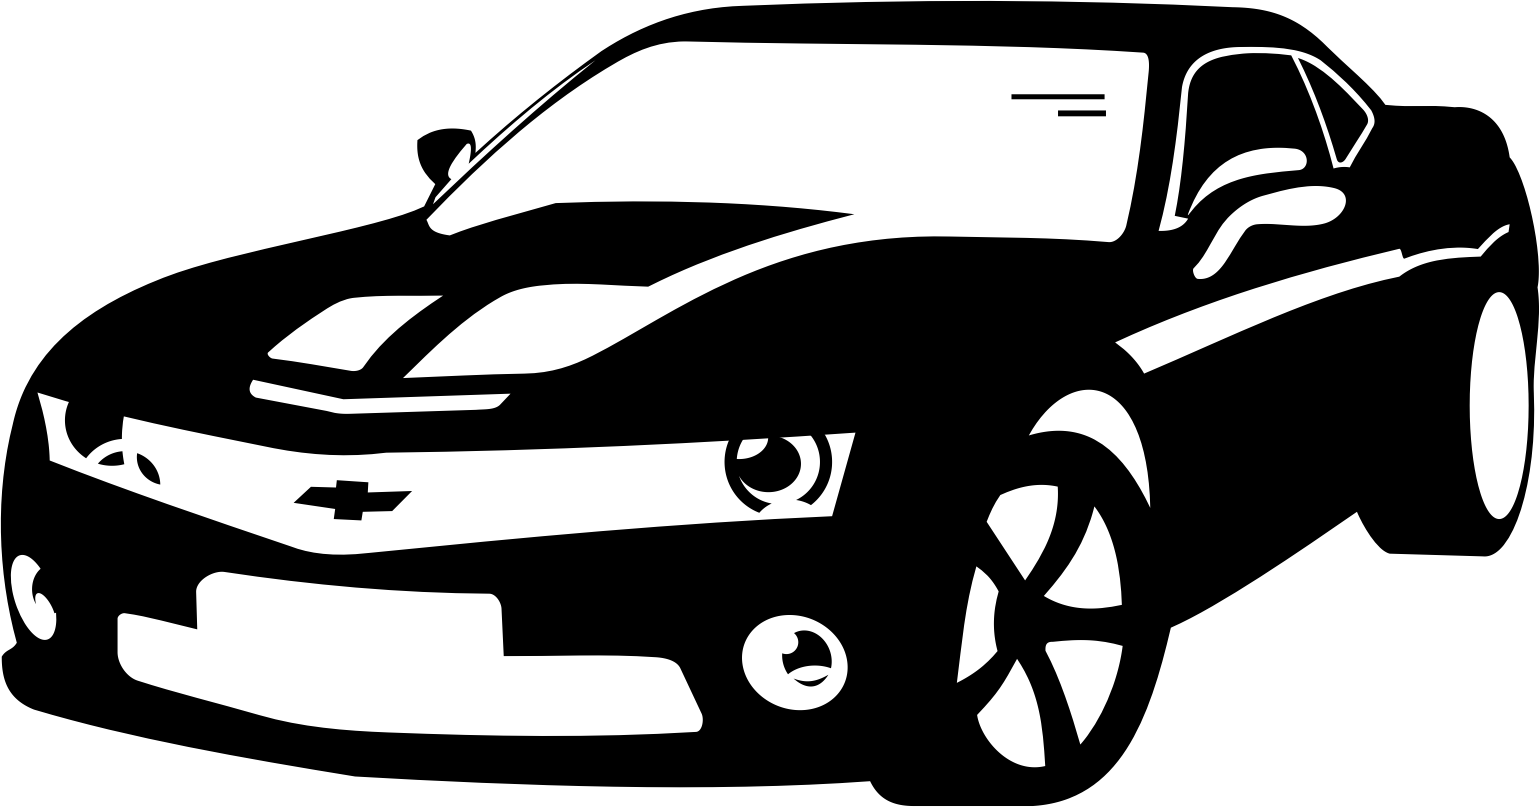 Car Silhouette Clipart Free Download Best Car Silhouette